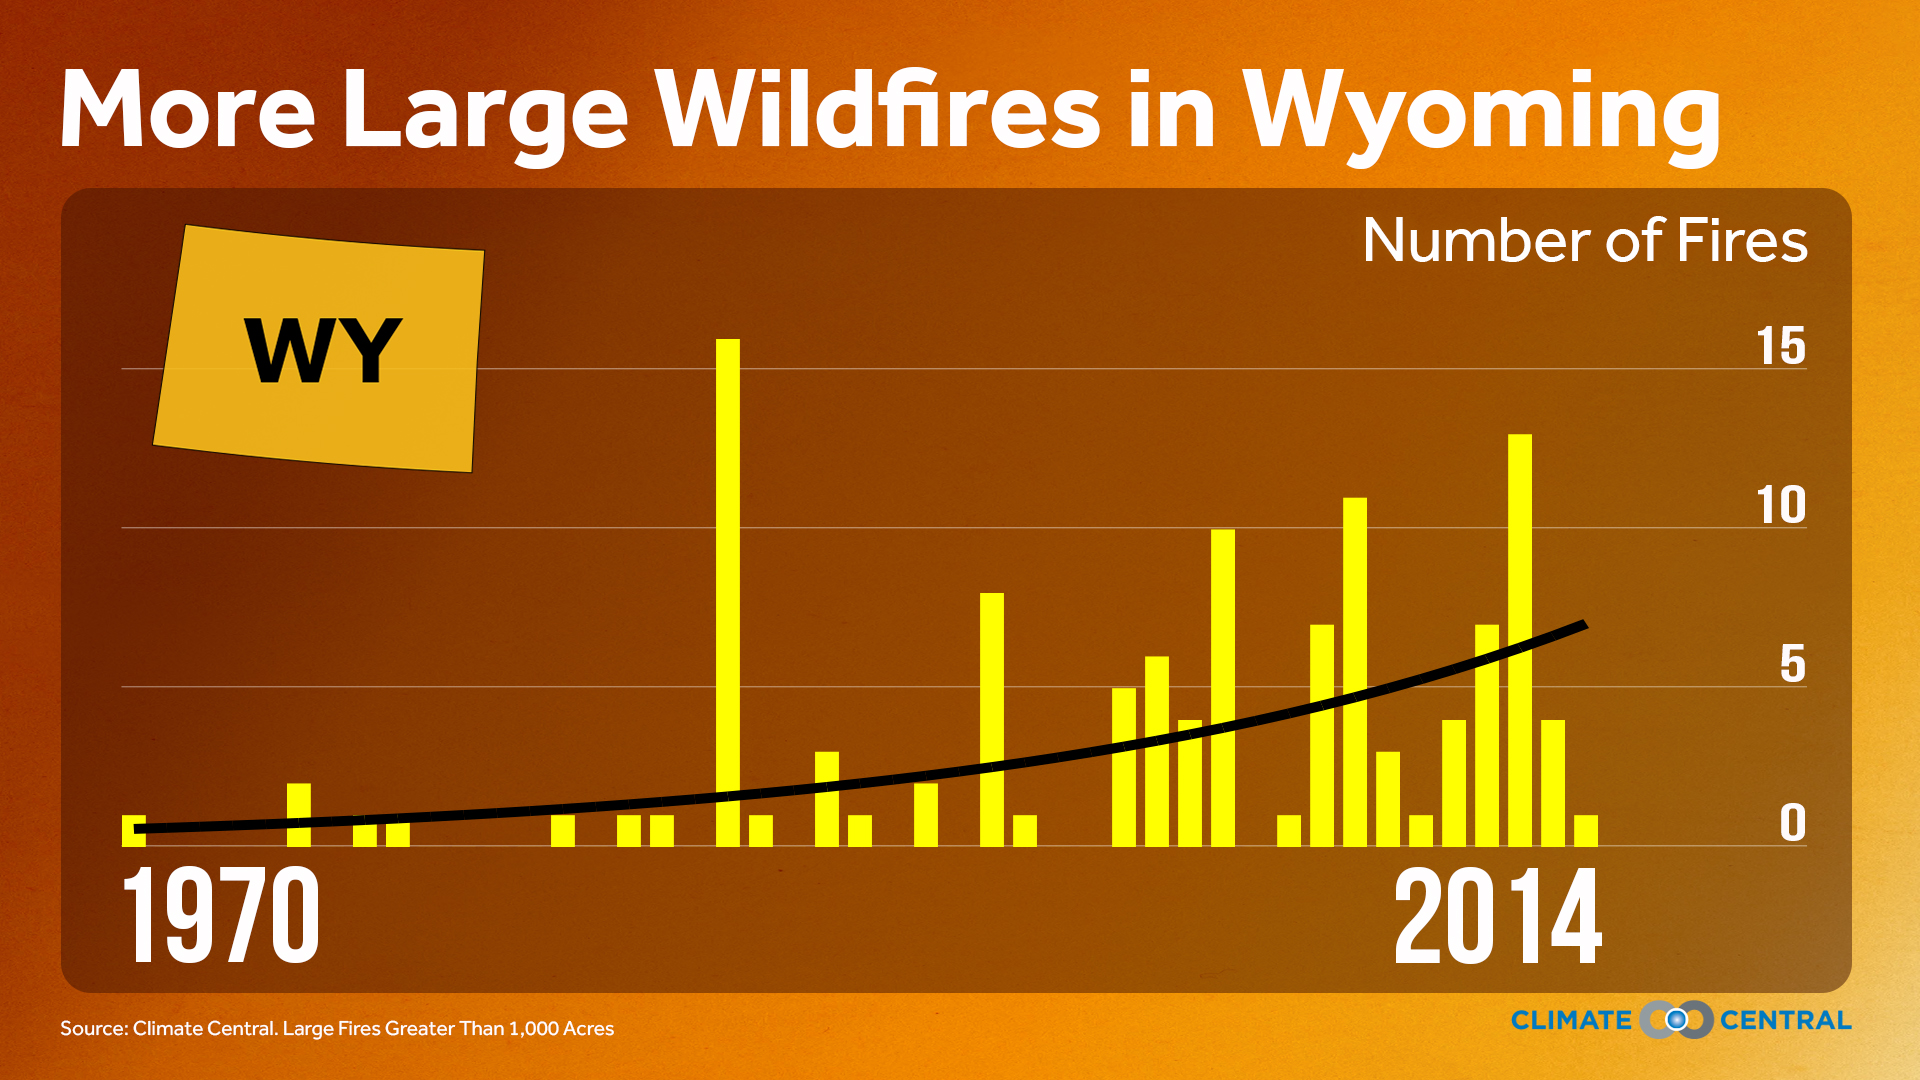 Wildfire trends in Wyoming